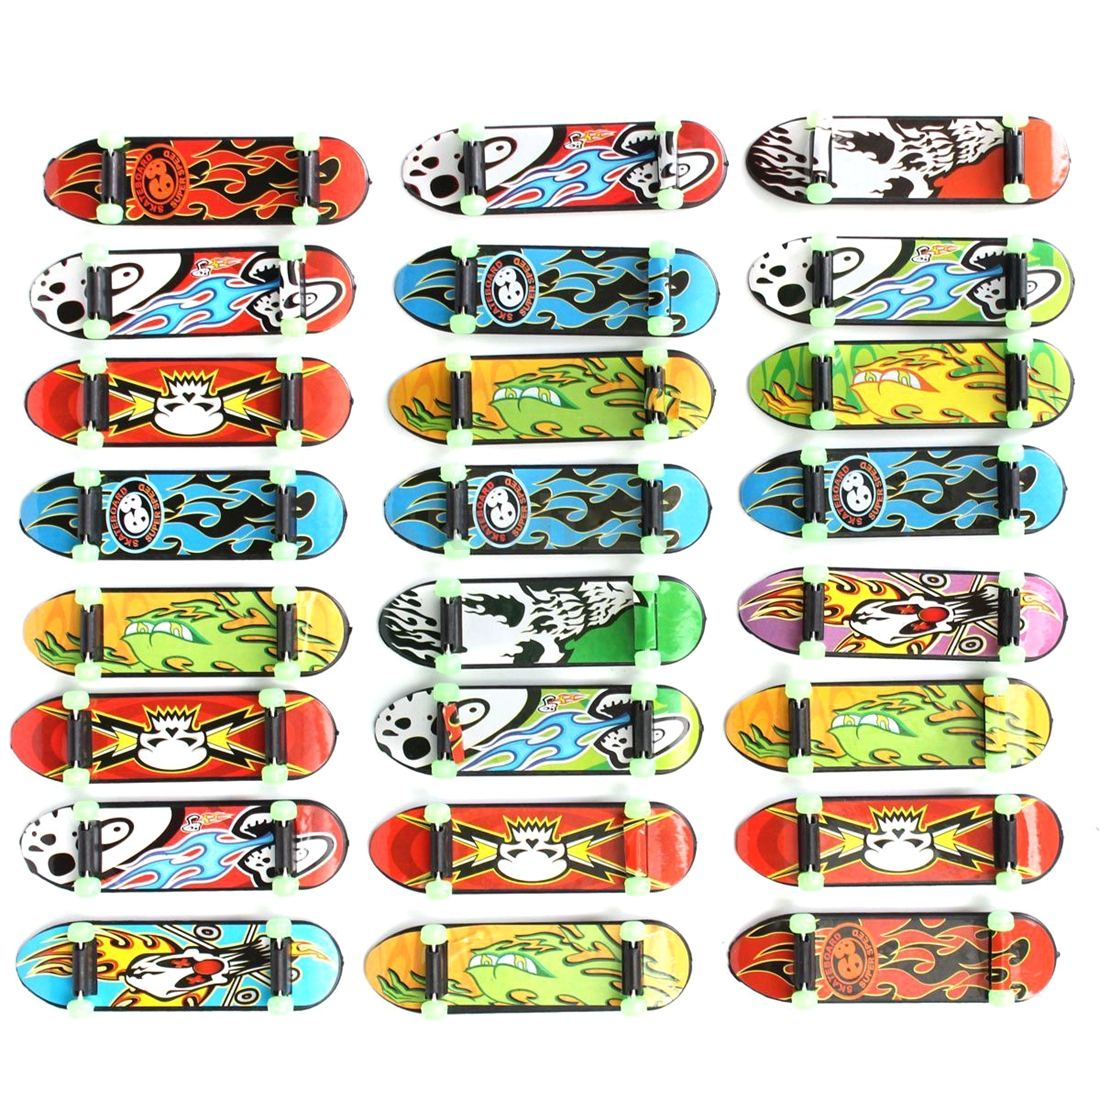 LCLL-24pcs/Pack Fingerboards Finger Board Deck Skateboard 3.94inch Mini Kids Games Toys